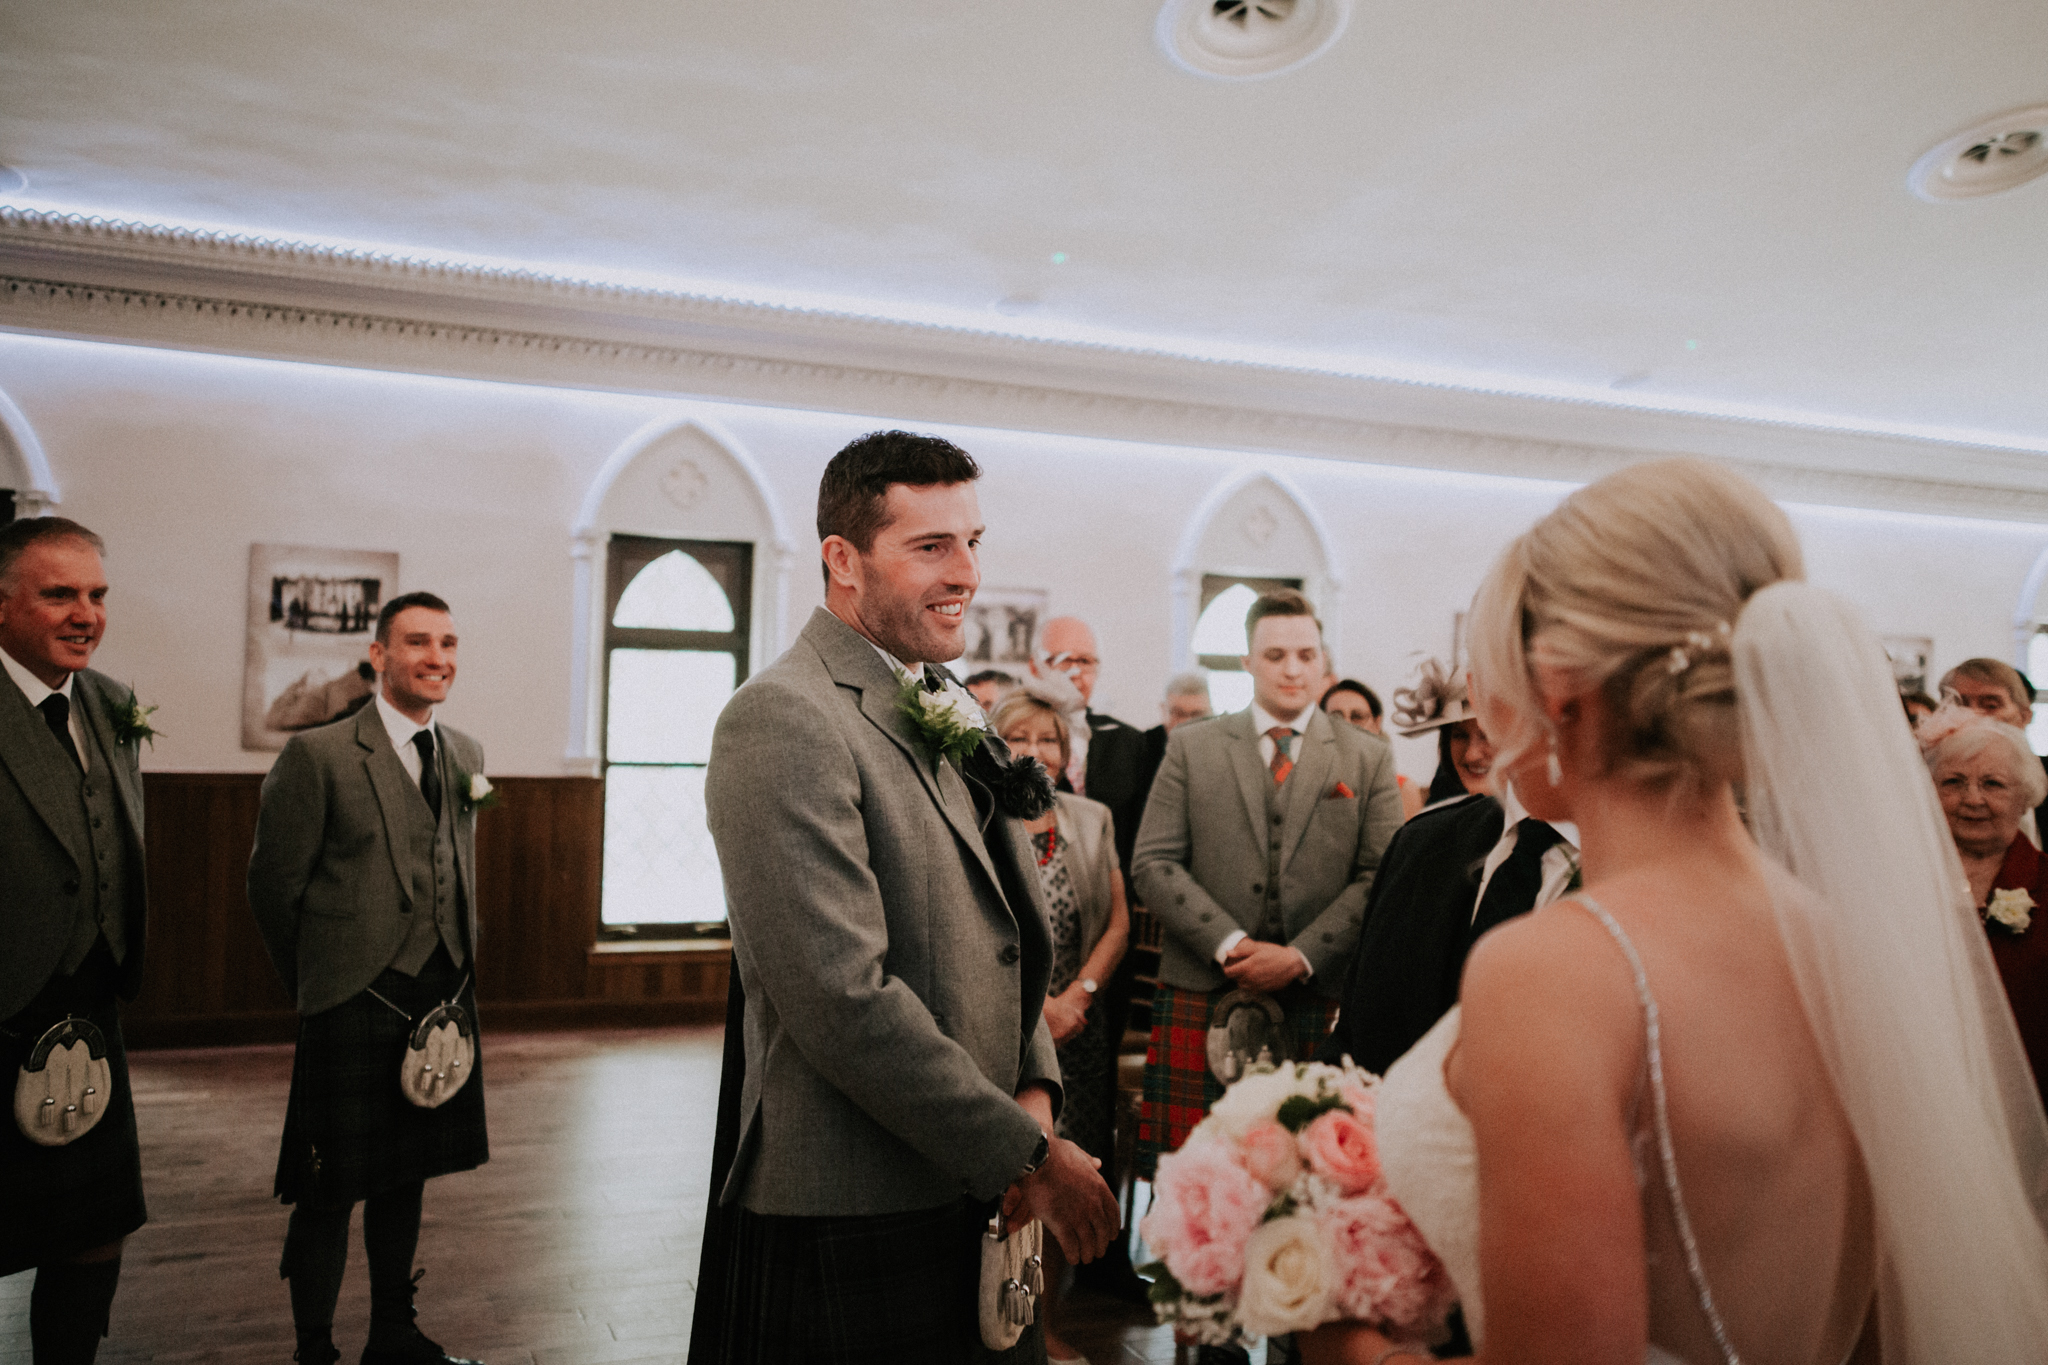 The groom is seeing the bride for the first time